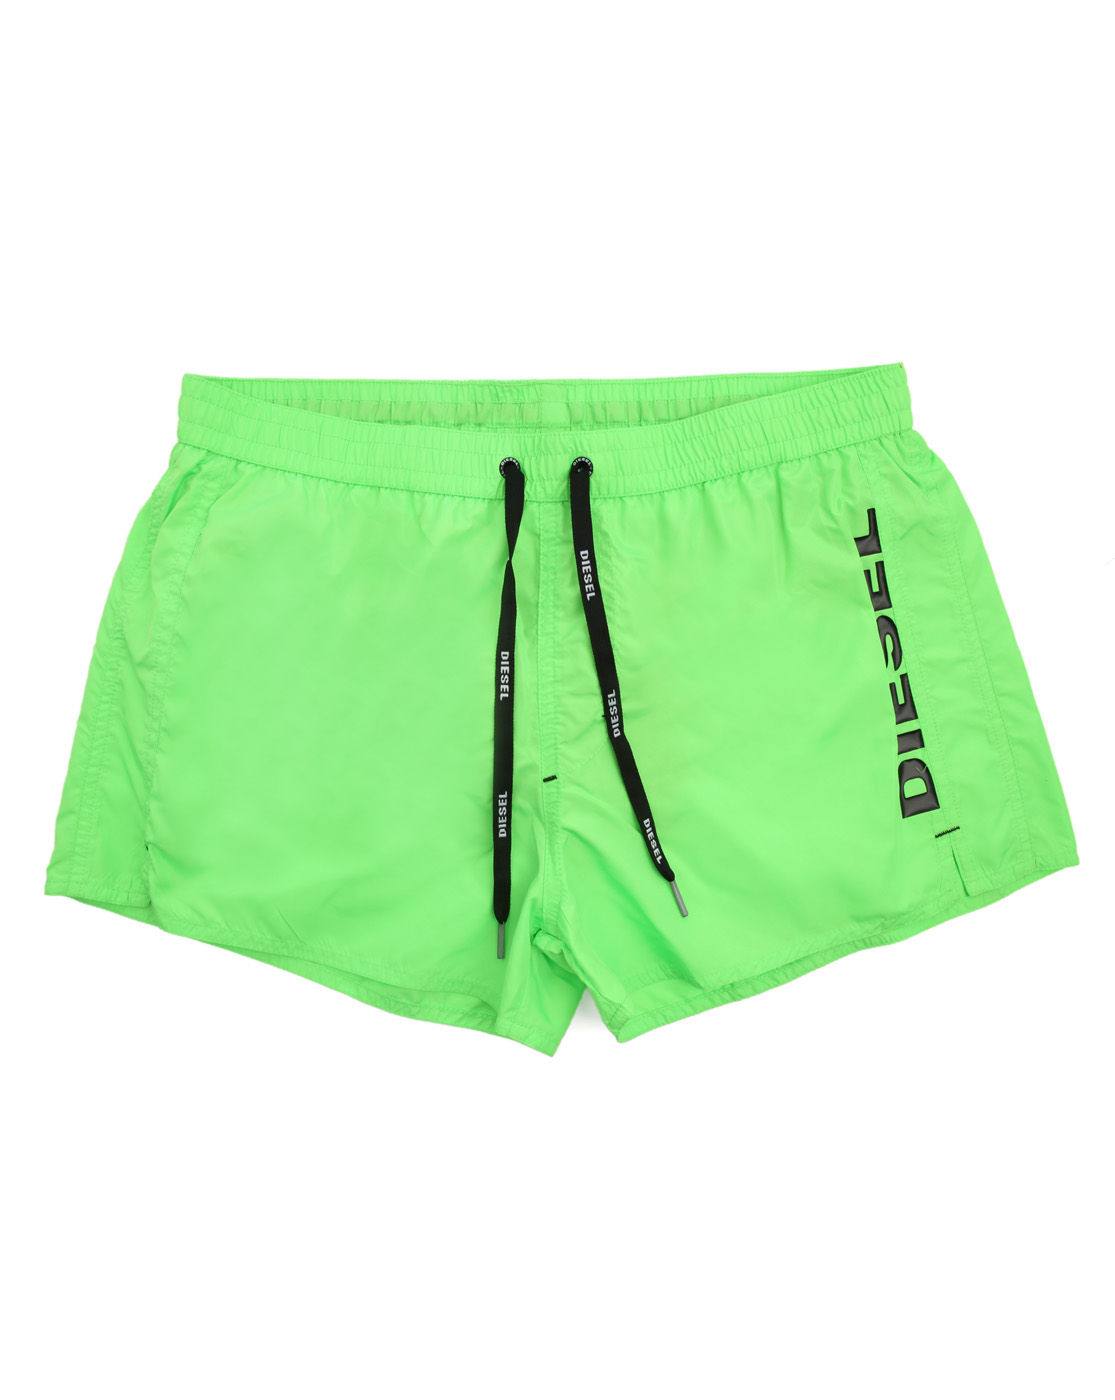 You searched for: neon green shorts! Etsy is the home to thousands of handmade, vintage, and one-of-a-kind products and gifts related to your search. No matter what you're looking for or where you are in the world, our global marketplace of sellers can help you find unique and affordable options. Let's get started!